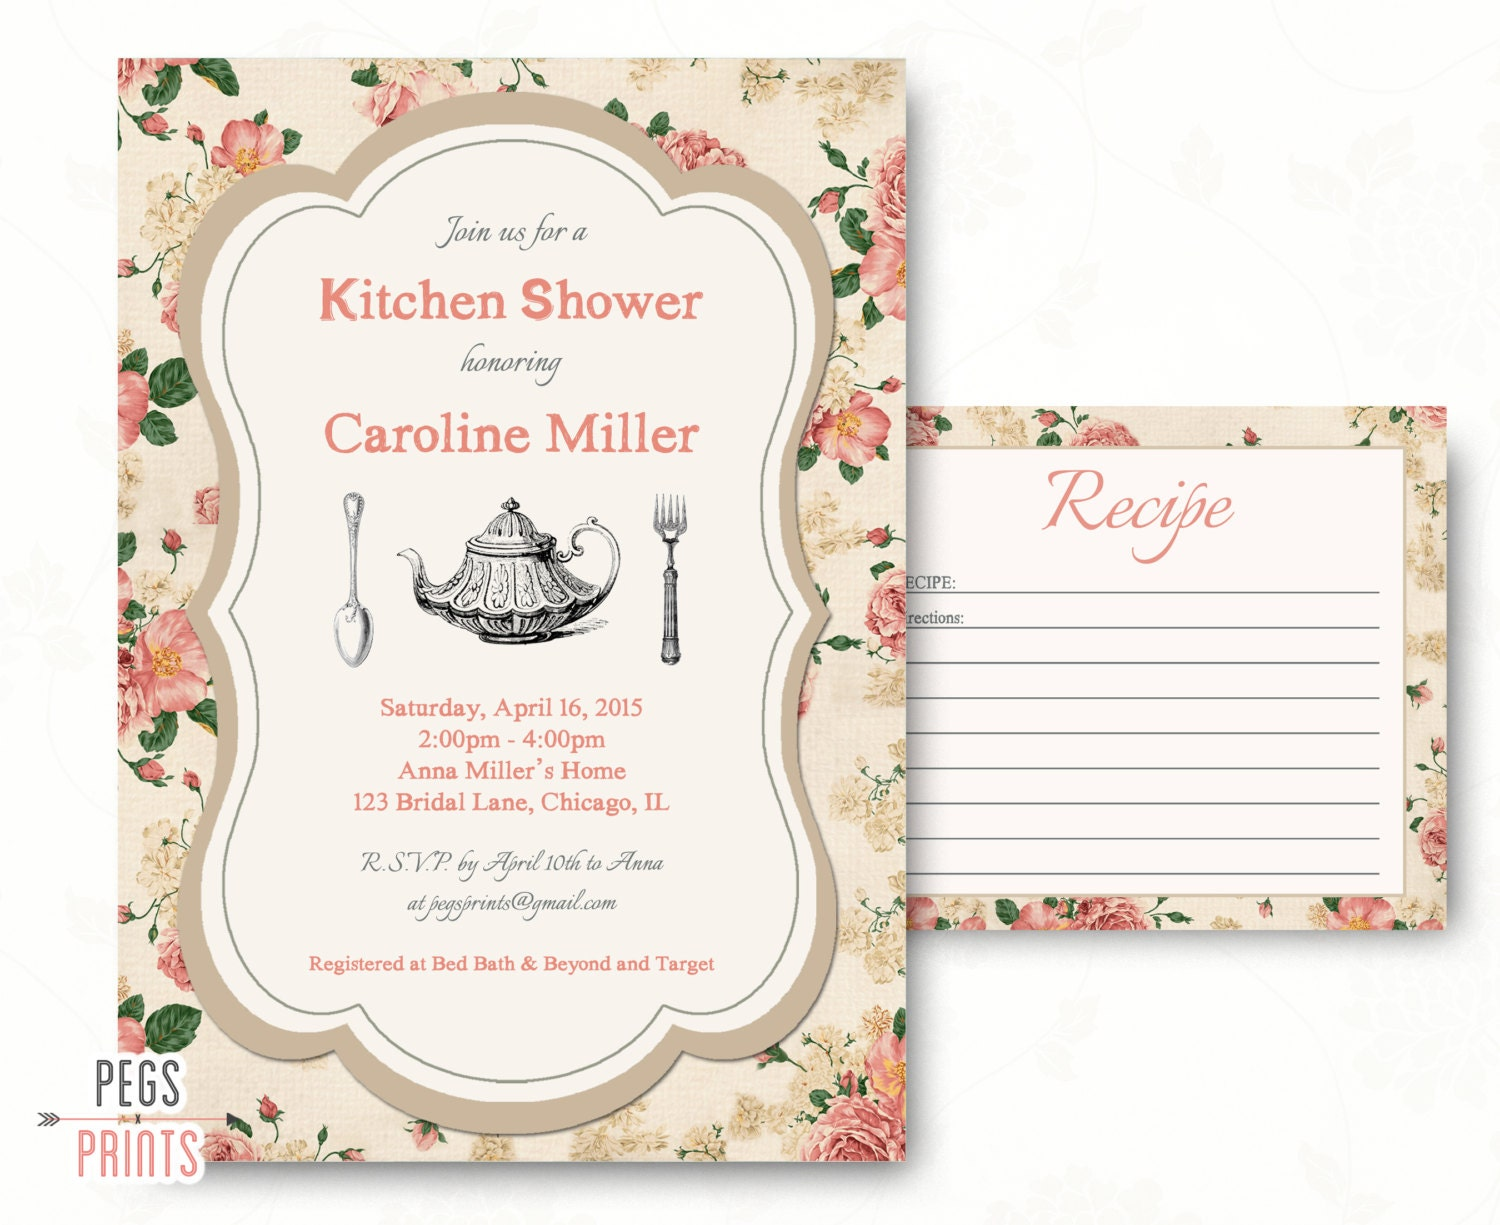 Postcard Wedding Shower Invitations: Kitchen Bridal Shower Invitation And Recipe Card // Printable